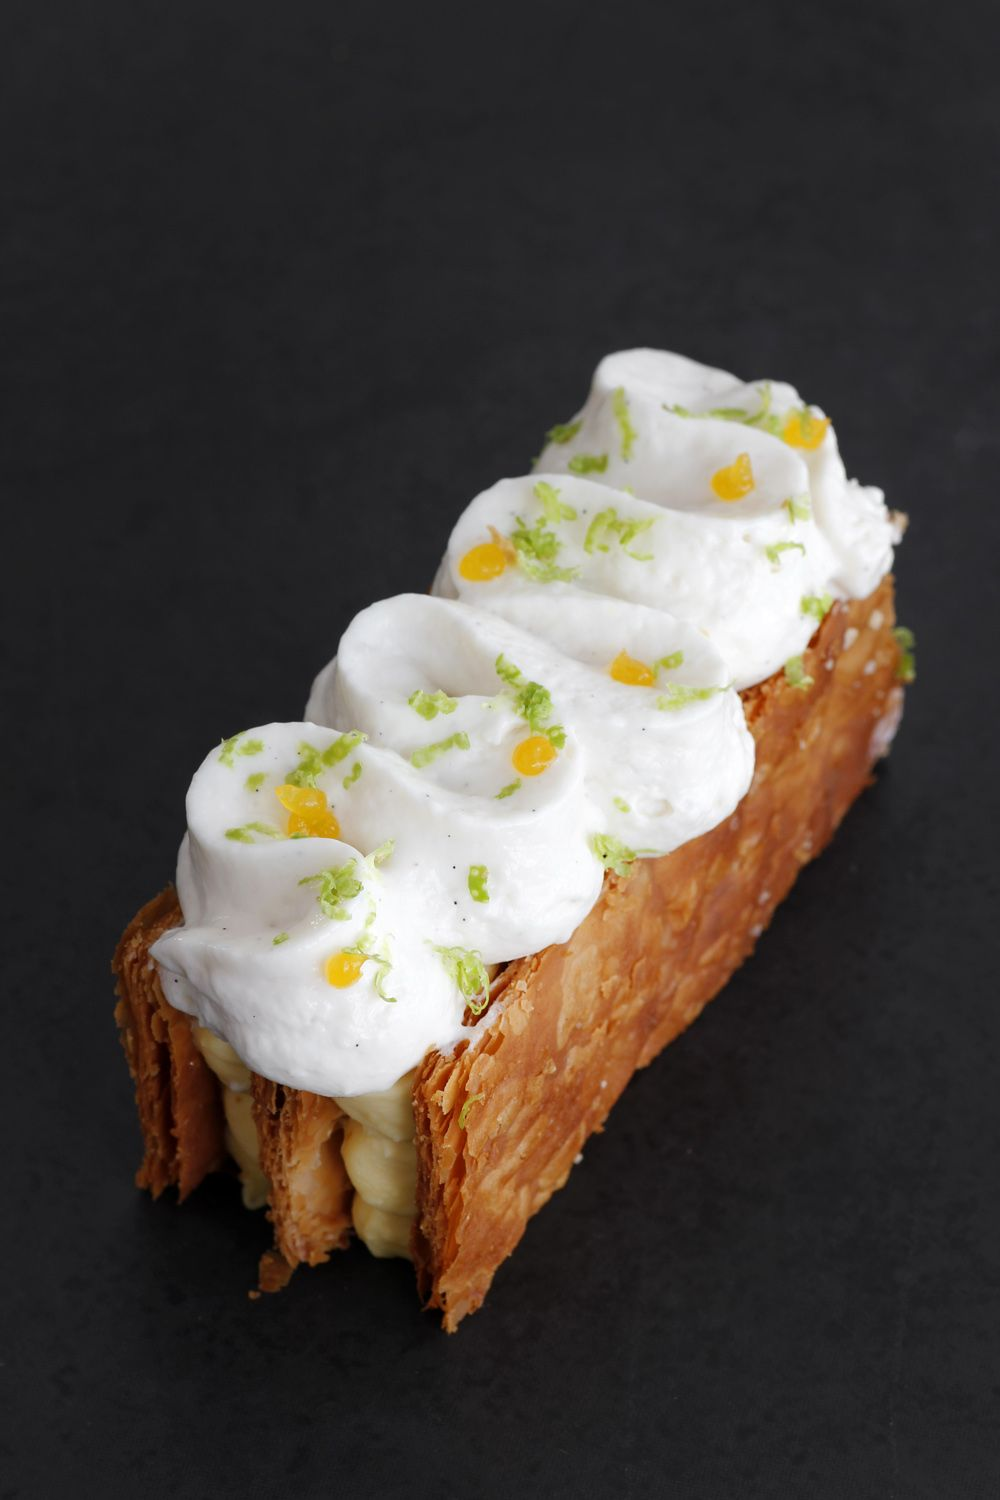 Tropical Mille Feuille Lil Cookie